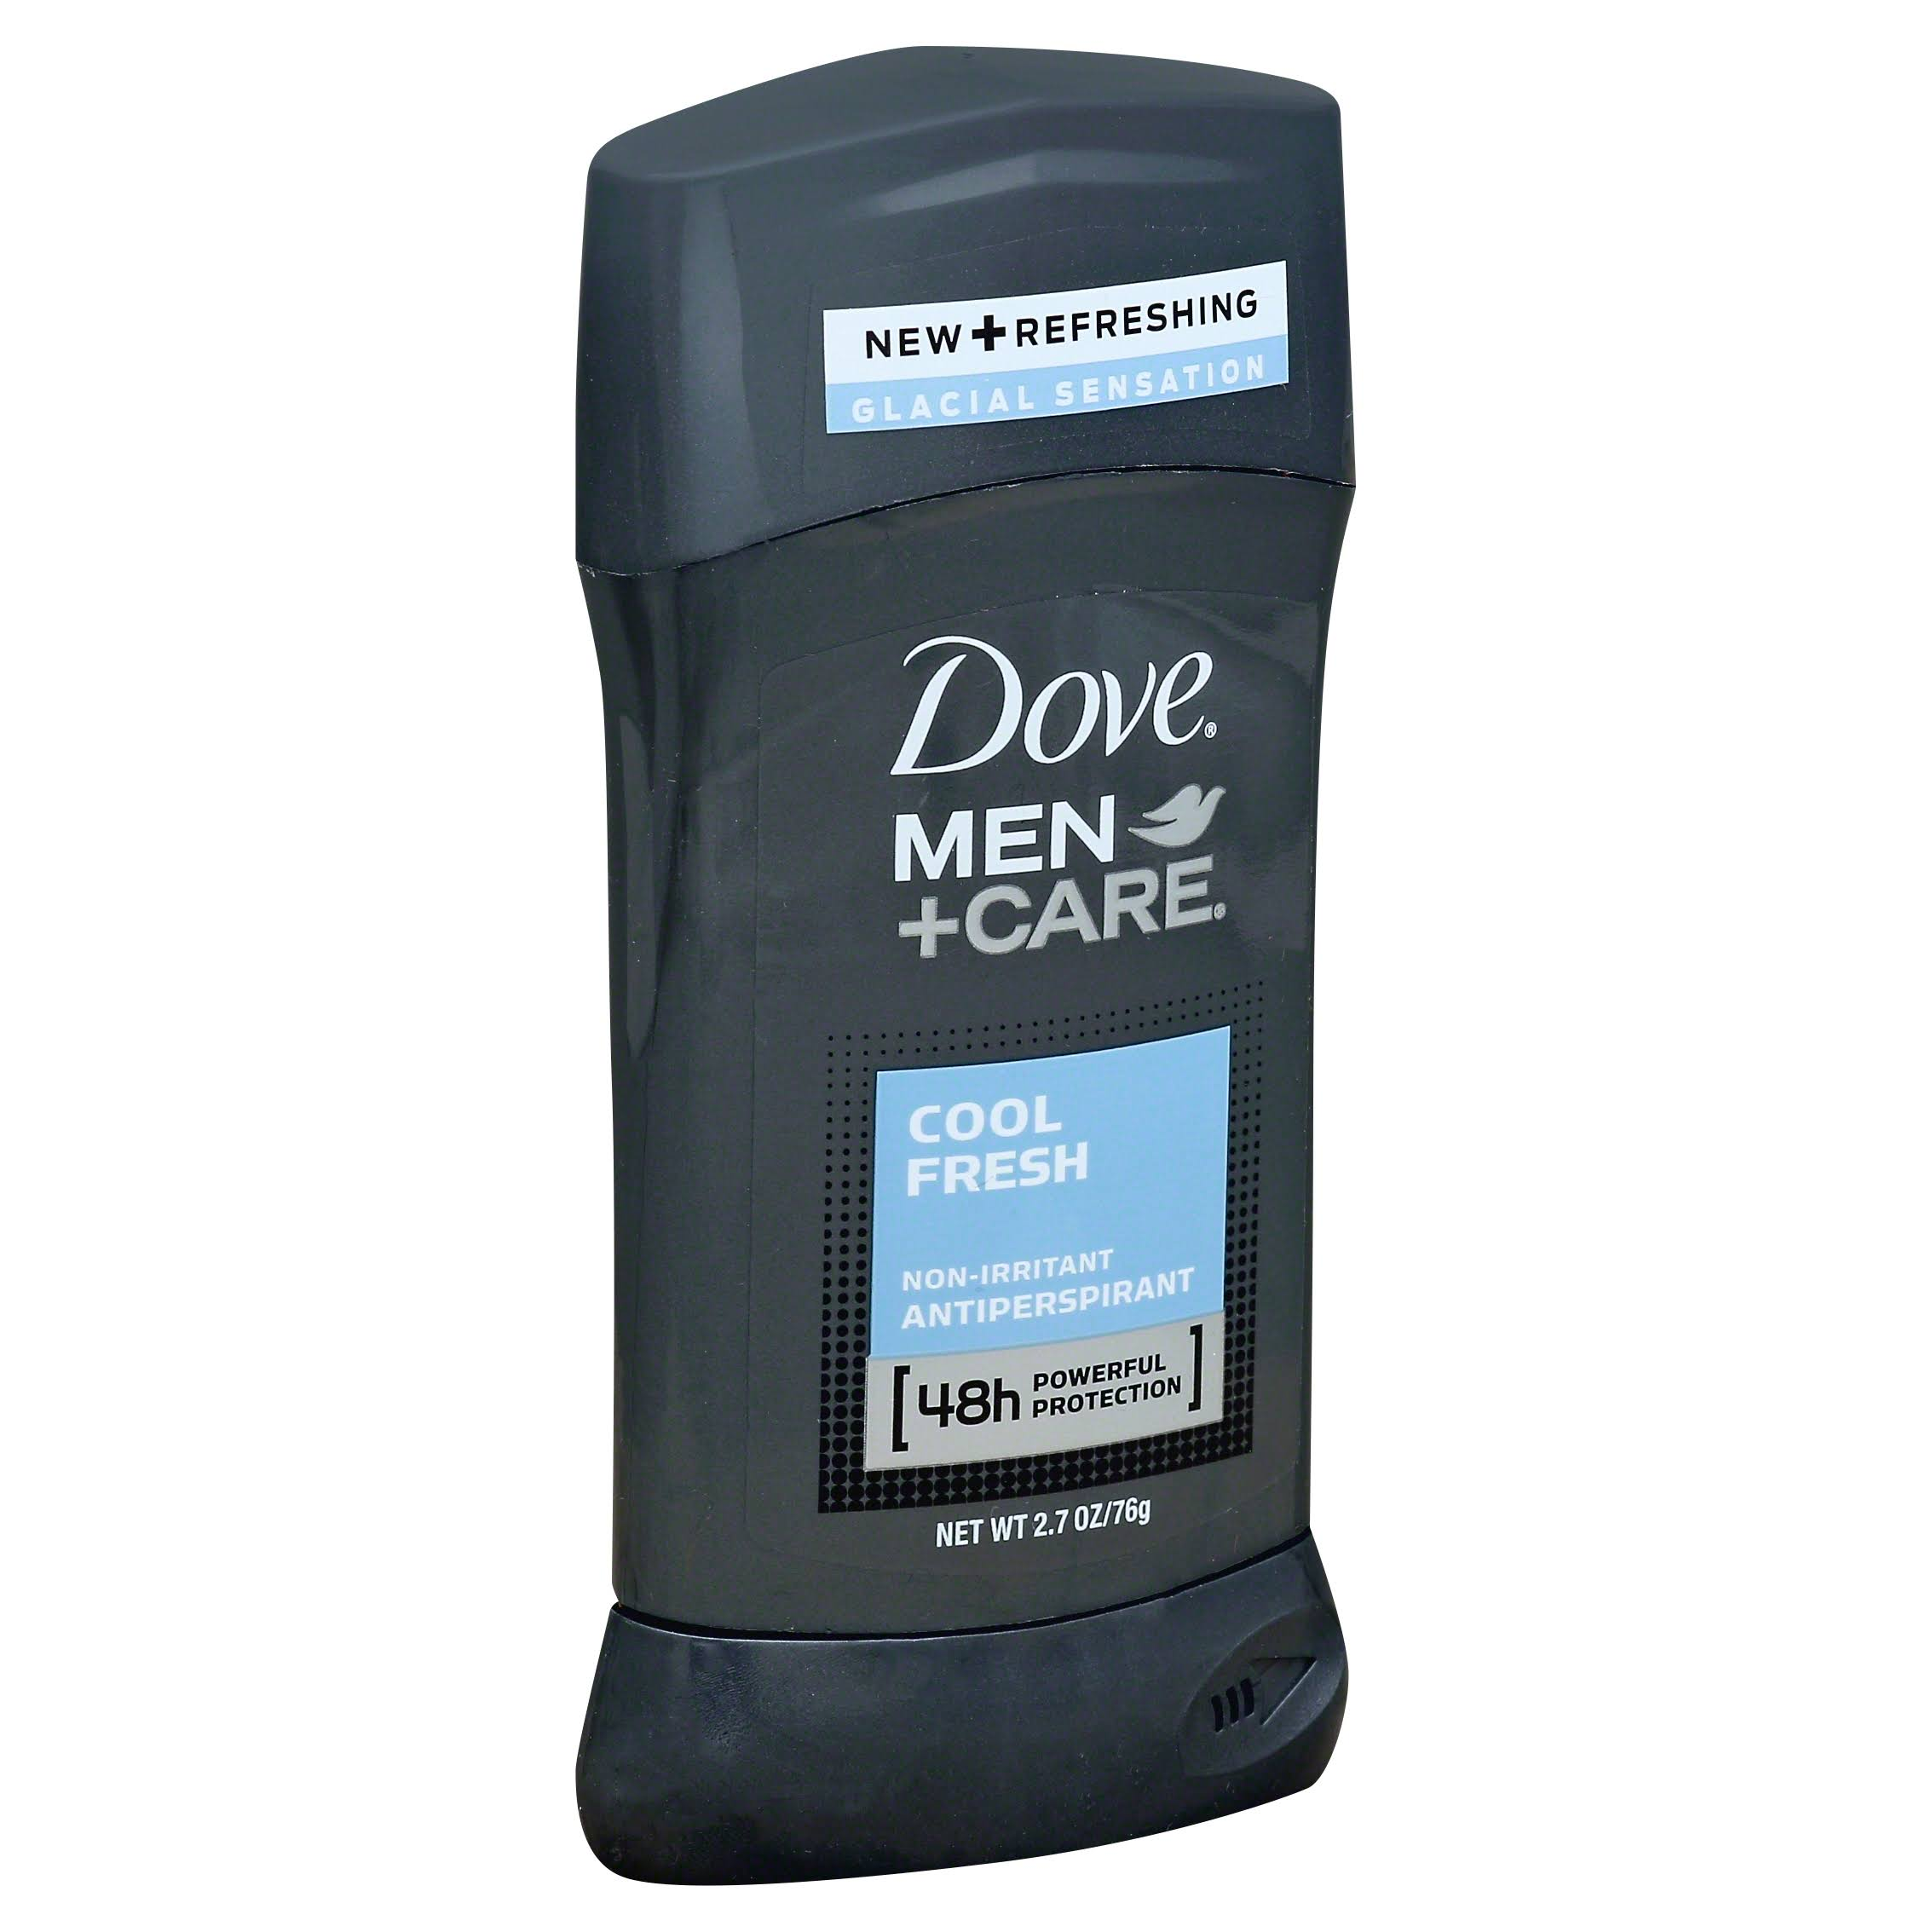 Dove Men Plus Care Cool Fresh Antiperspirant - 2.7oz